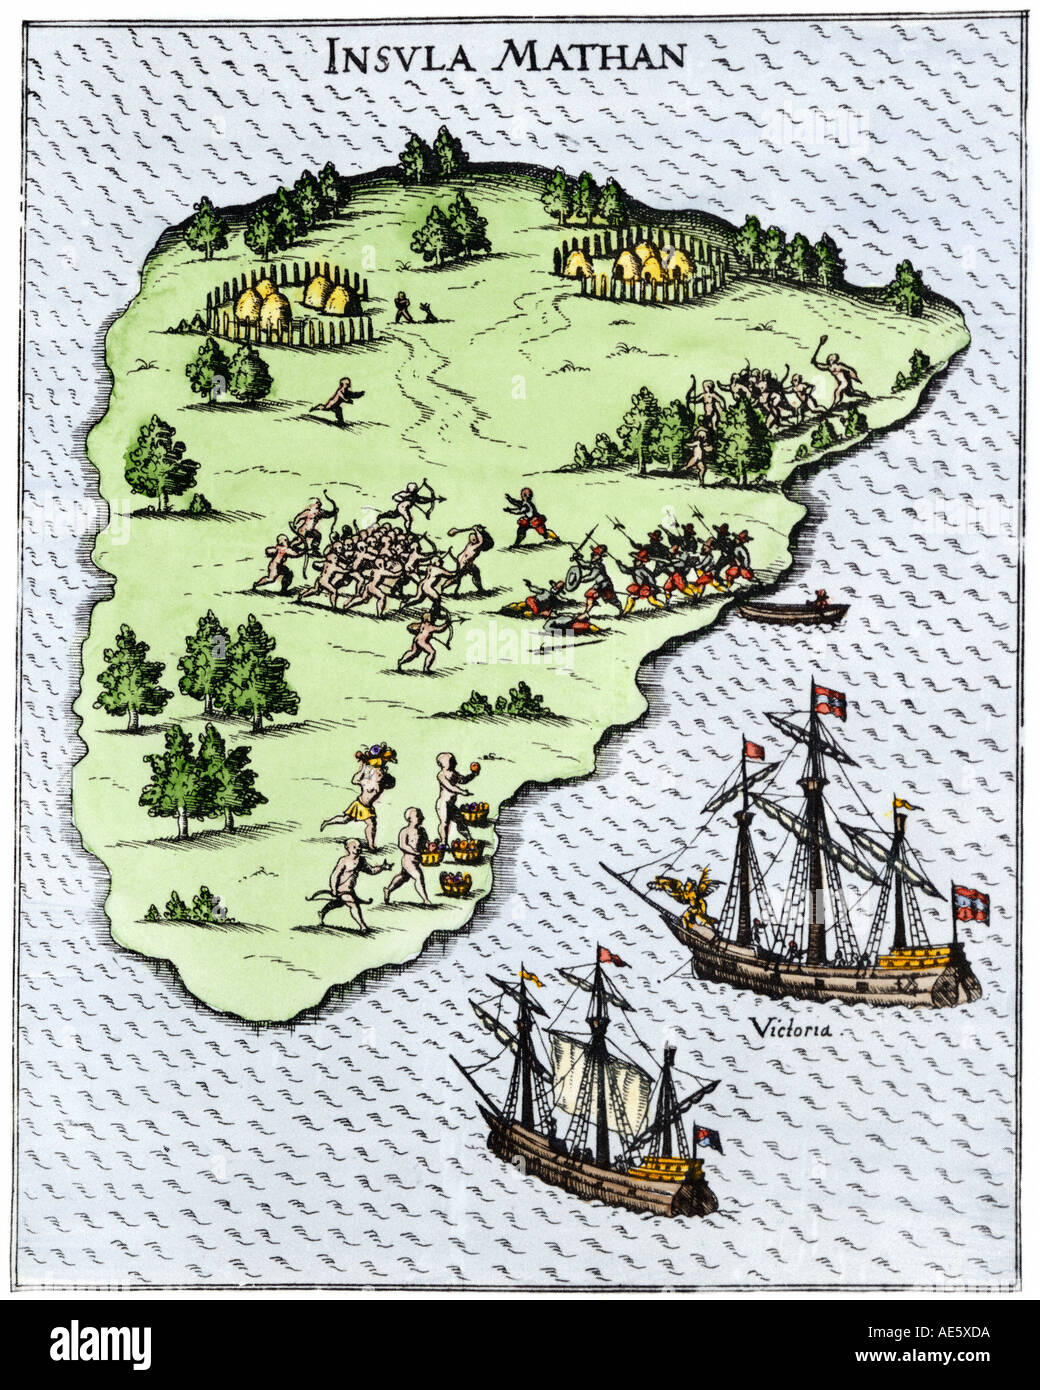 Magellan expedition ships at Mactan, Philippines, where Magellan was killed in a battle with natives, 1521. Hand-colored woodcut of Pigafetta illus. - Stock Image